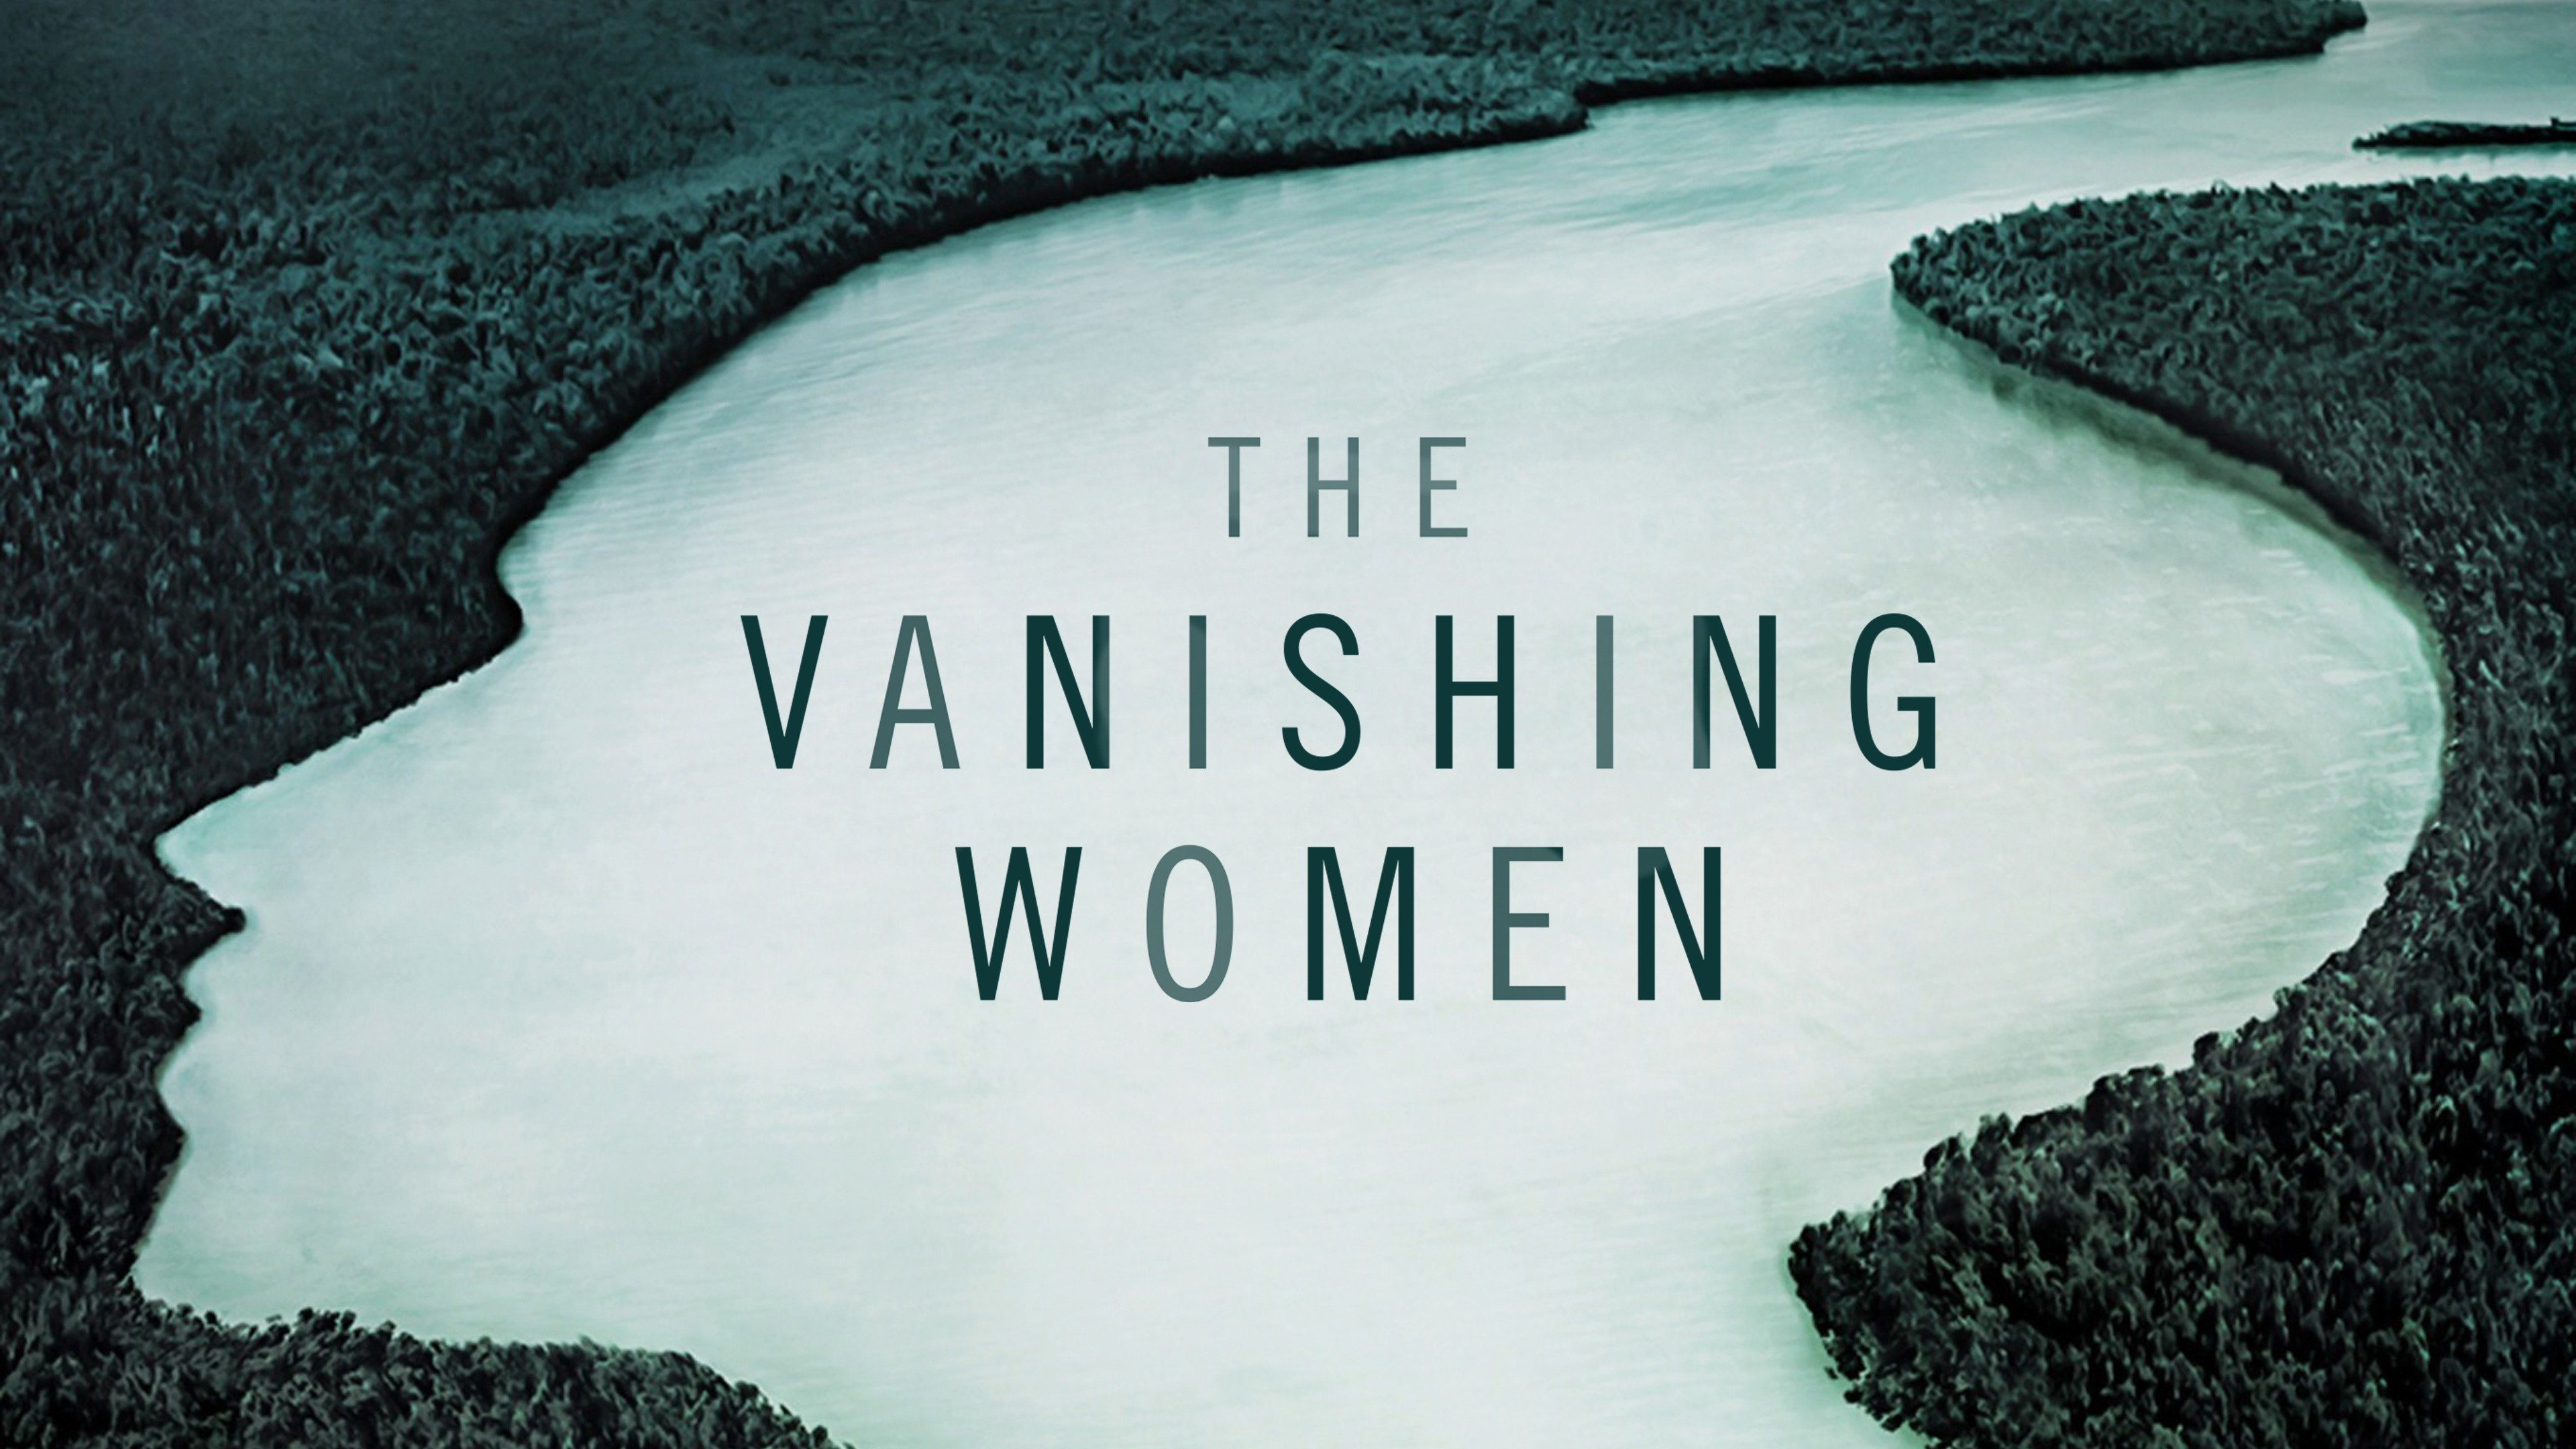 The Vanishing Women